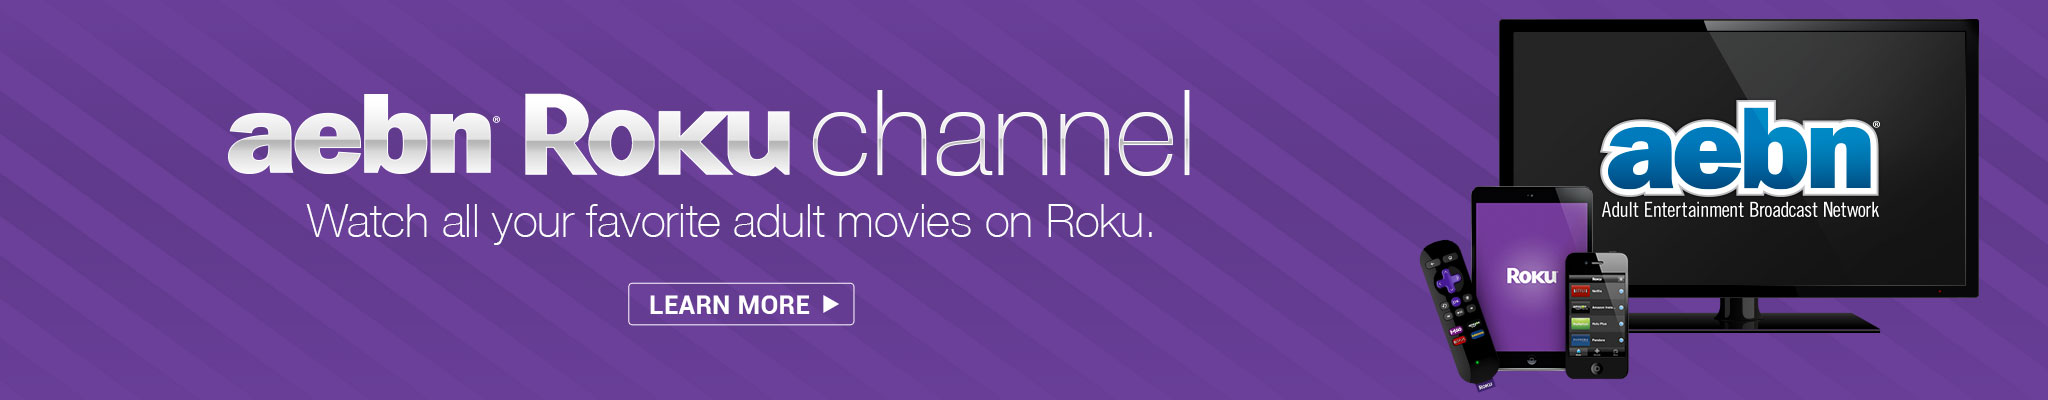 Watch all your favorite Adult Movies on Roku